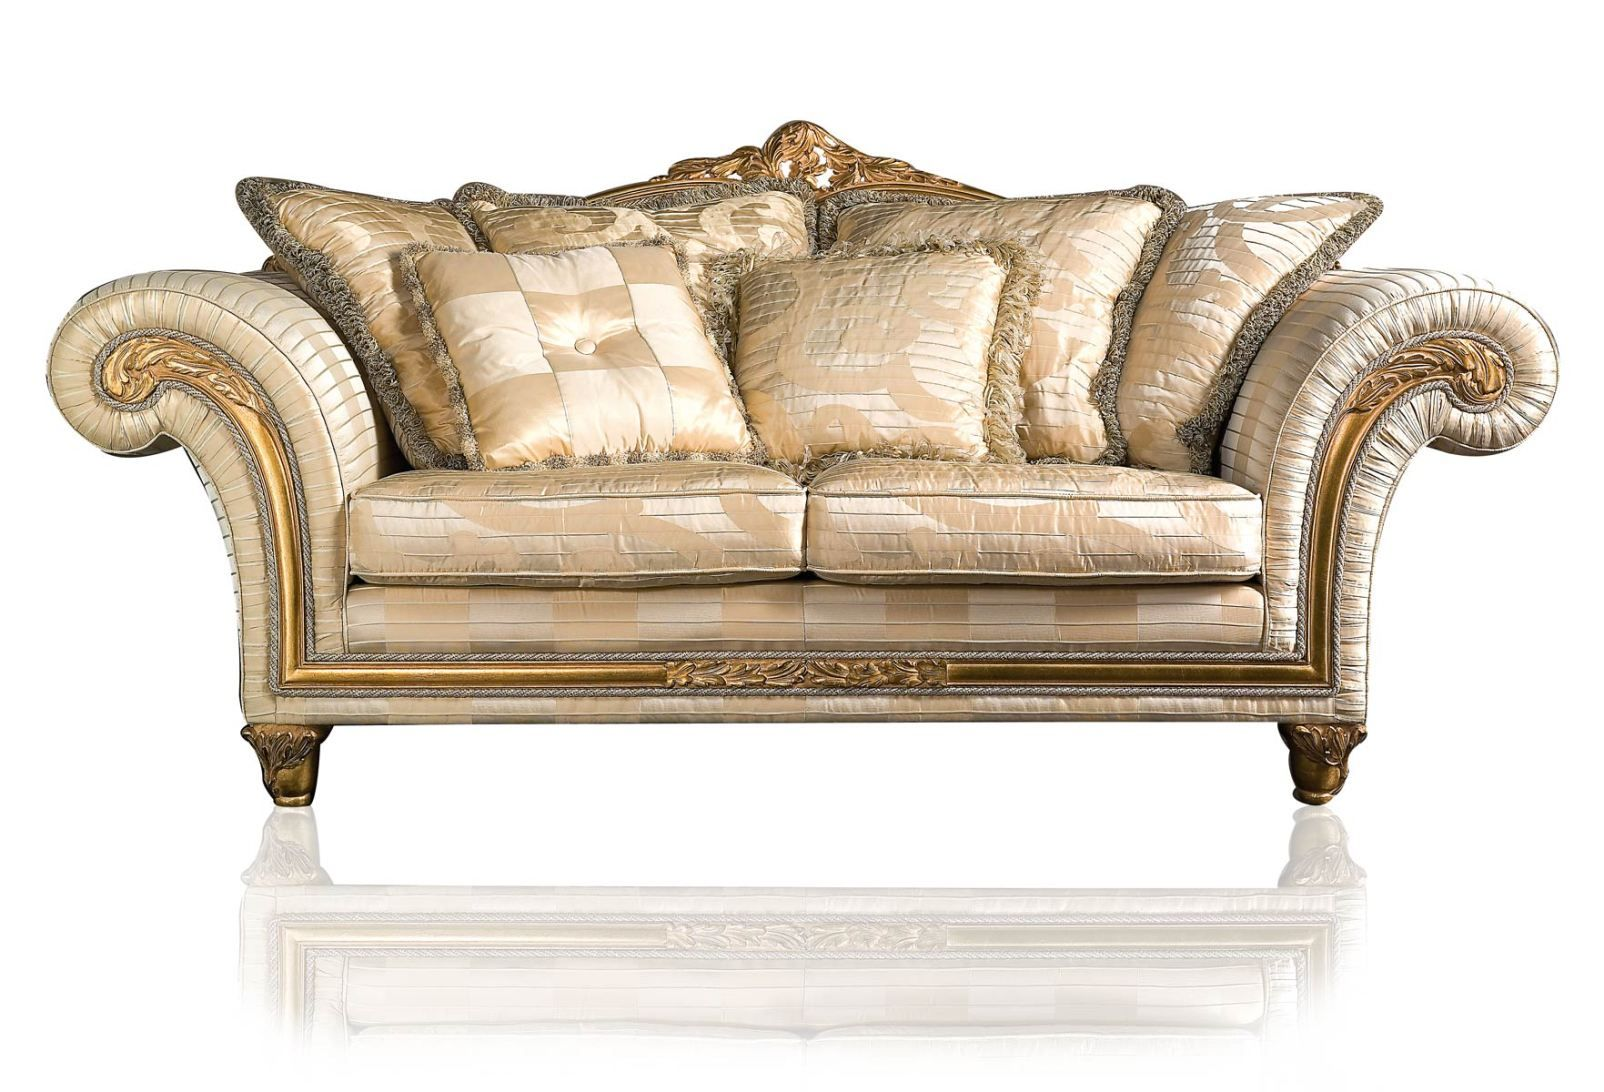 luxurious sofa | Modern Luxurious classic sofas designs ...